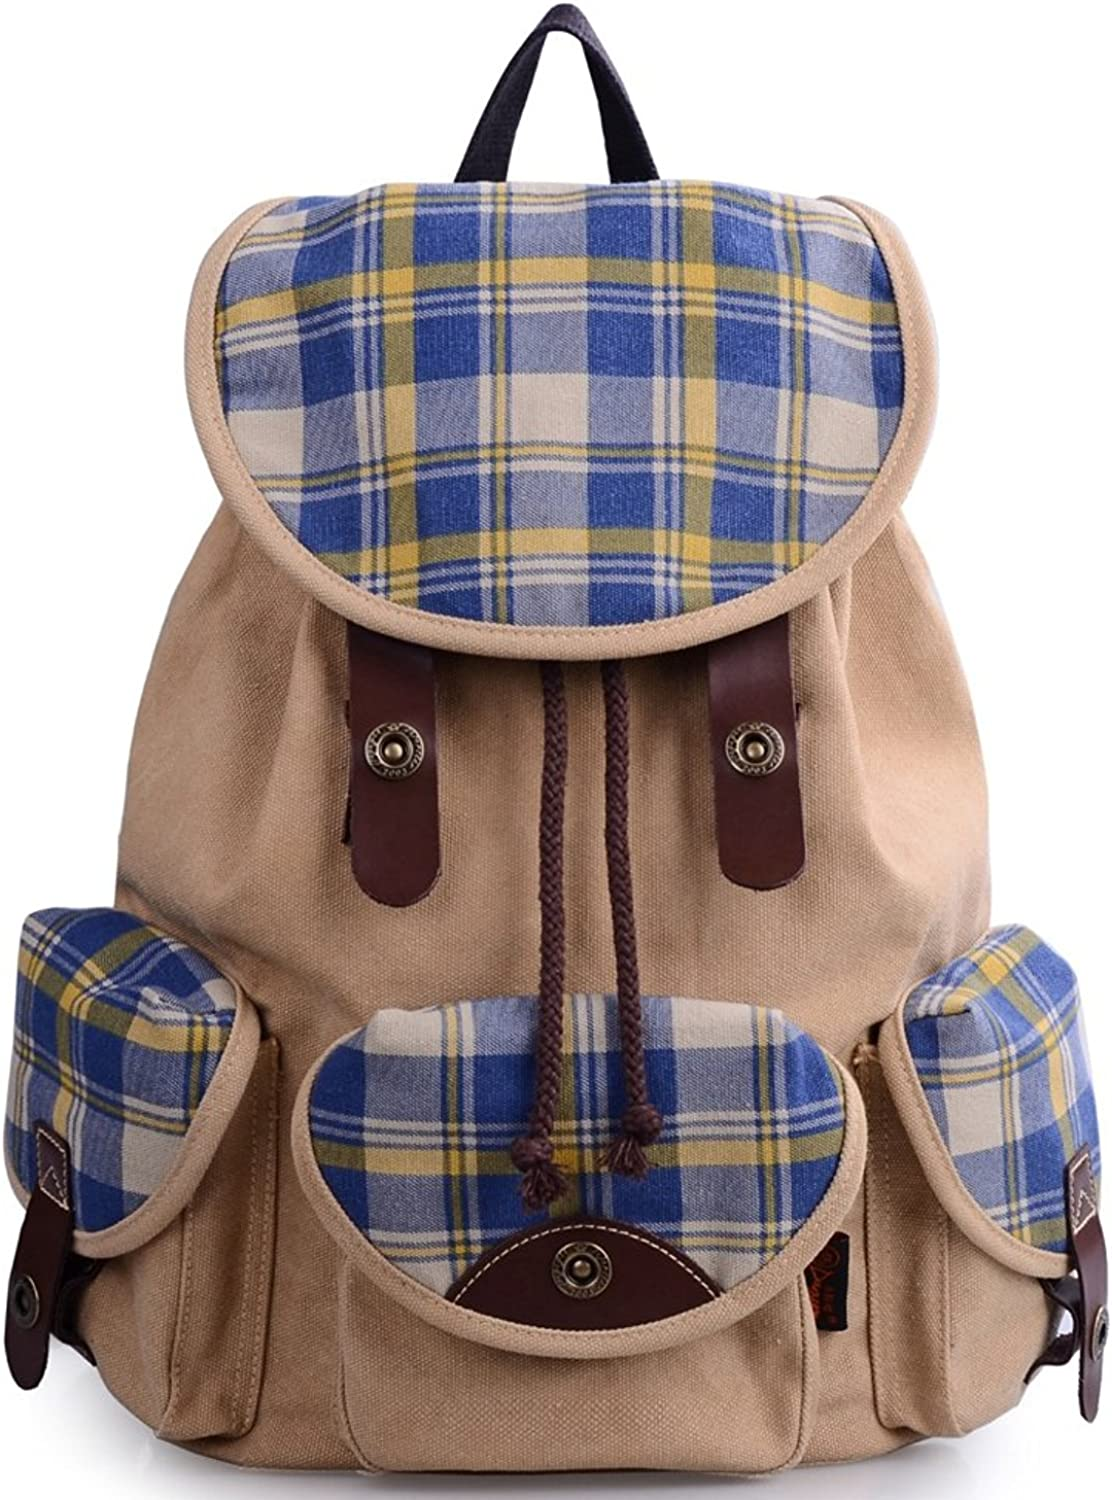 Colnsky Unisexadult Korean Fashion Casual Canvas Backpack for College G00125 New Style